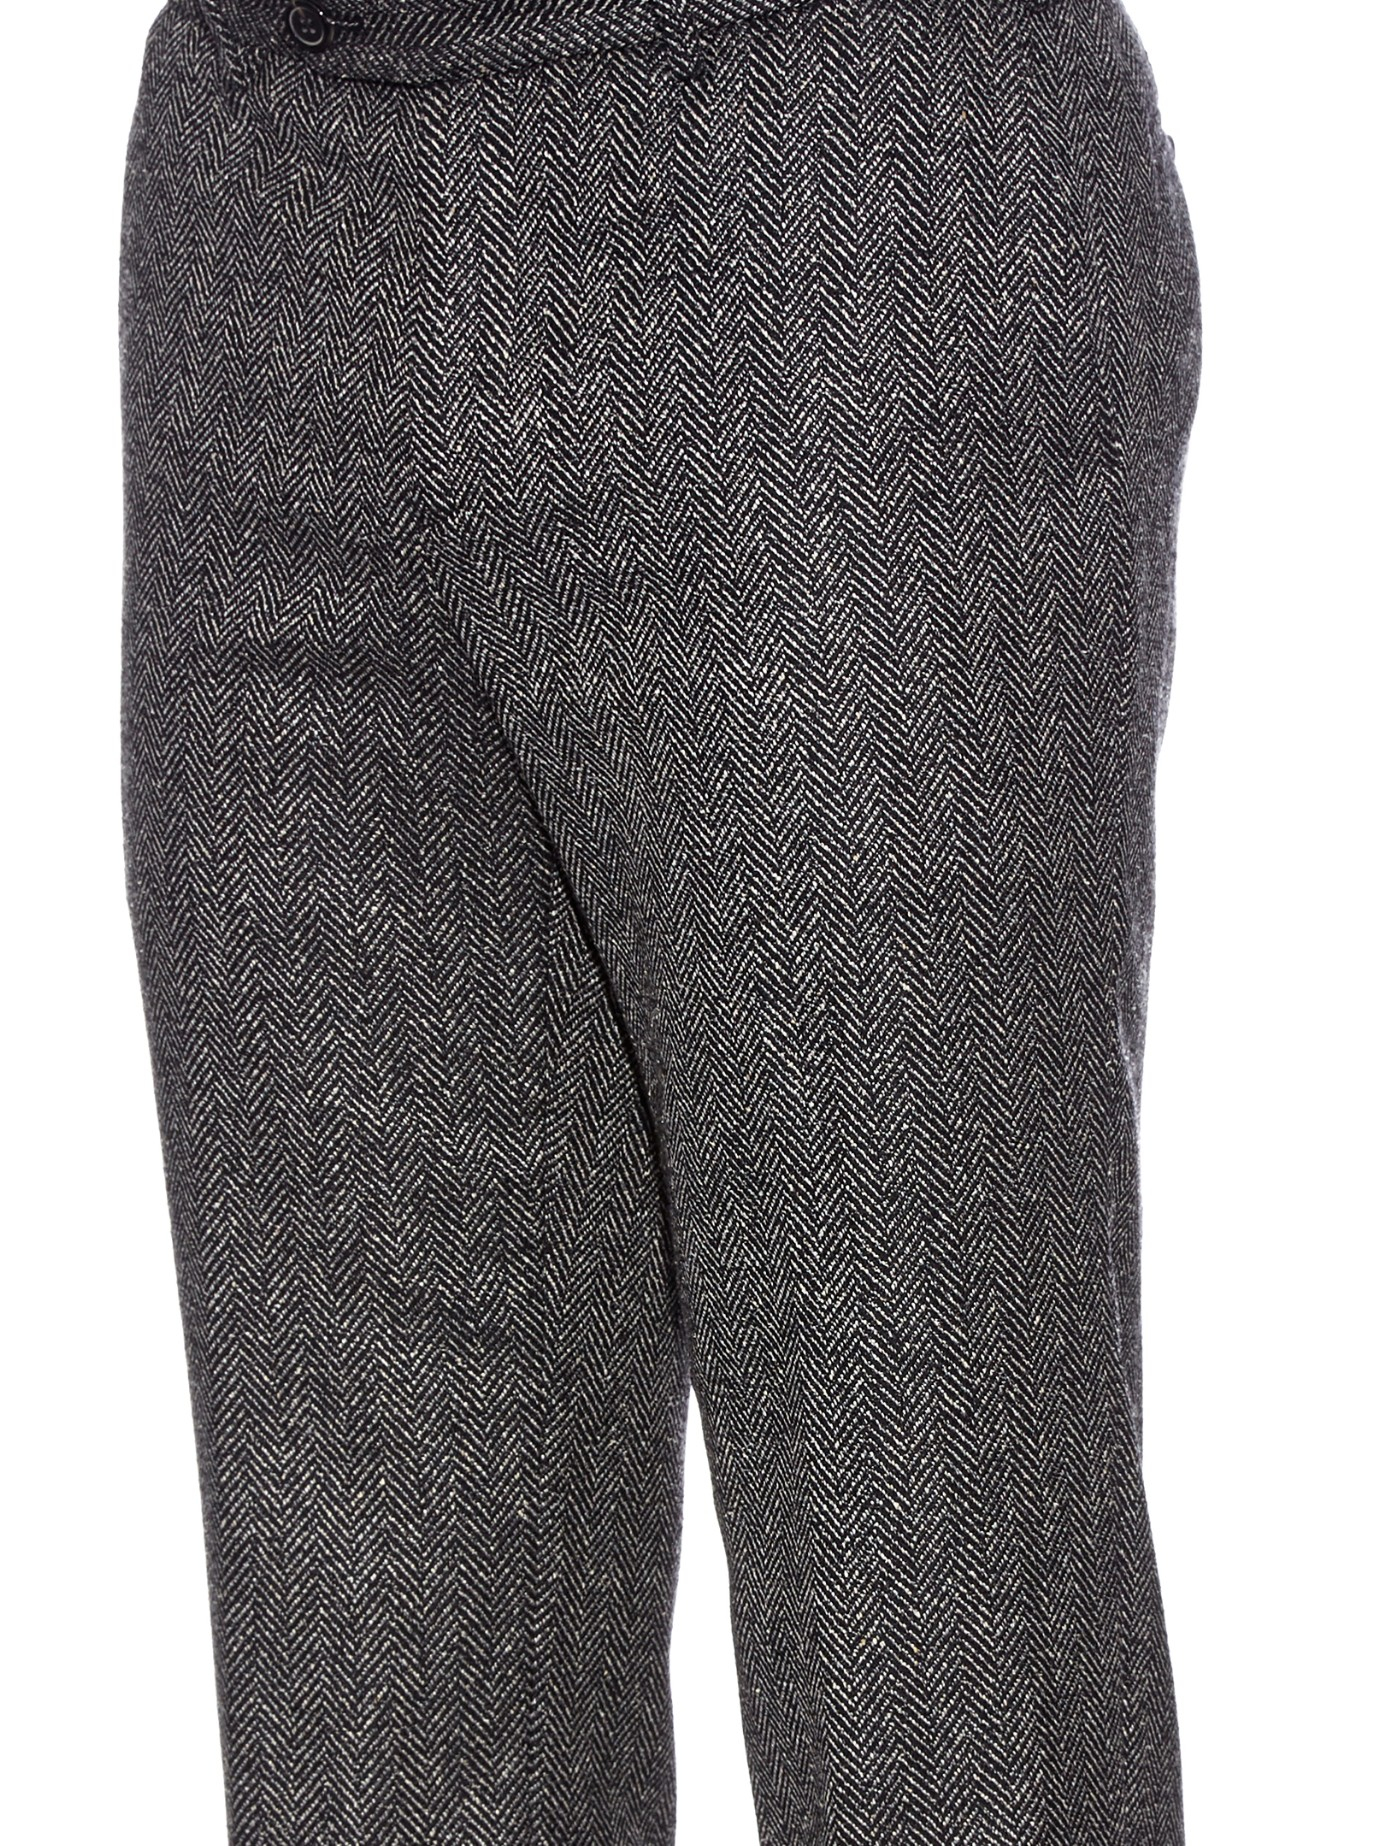 Wool Dress Pants For Men Classic Flat Front Style Trousers. from $ 54 99 Prime. out of 5 stars Icebreaker Merino. Shifter Pants, New Zealand Merino Wool. from $ 90 00 Prime. out of 5 stars 7. Woolrich. Men's Malone Wool Pant. from $ 00 Prime. out of 5 stars Kirkland Signature.